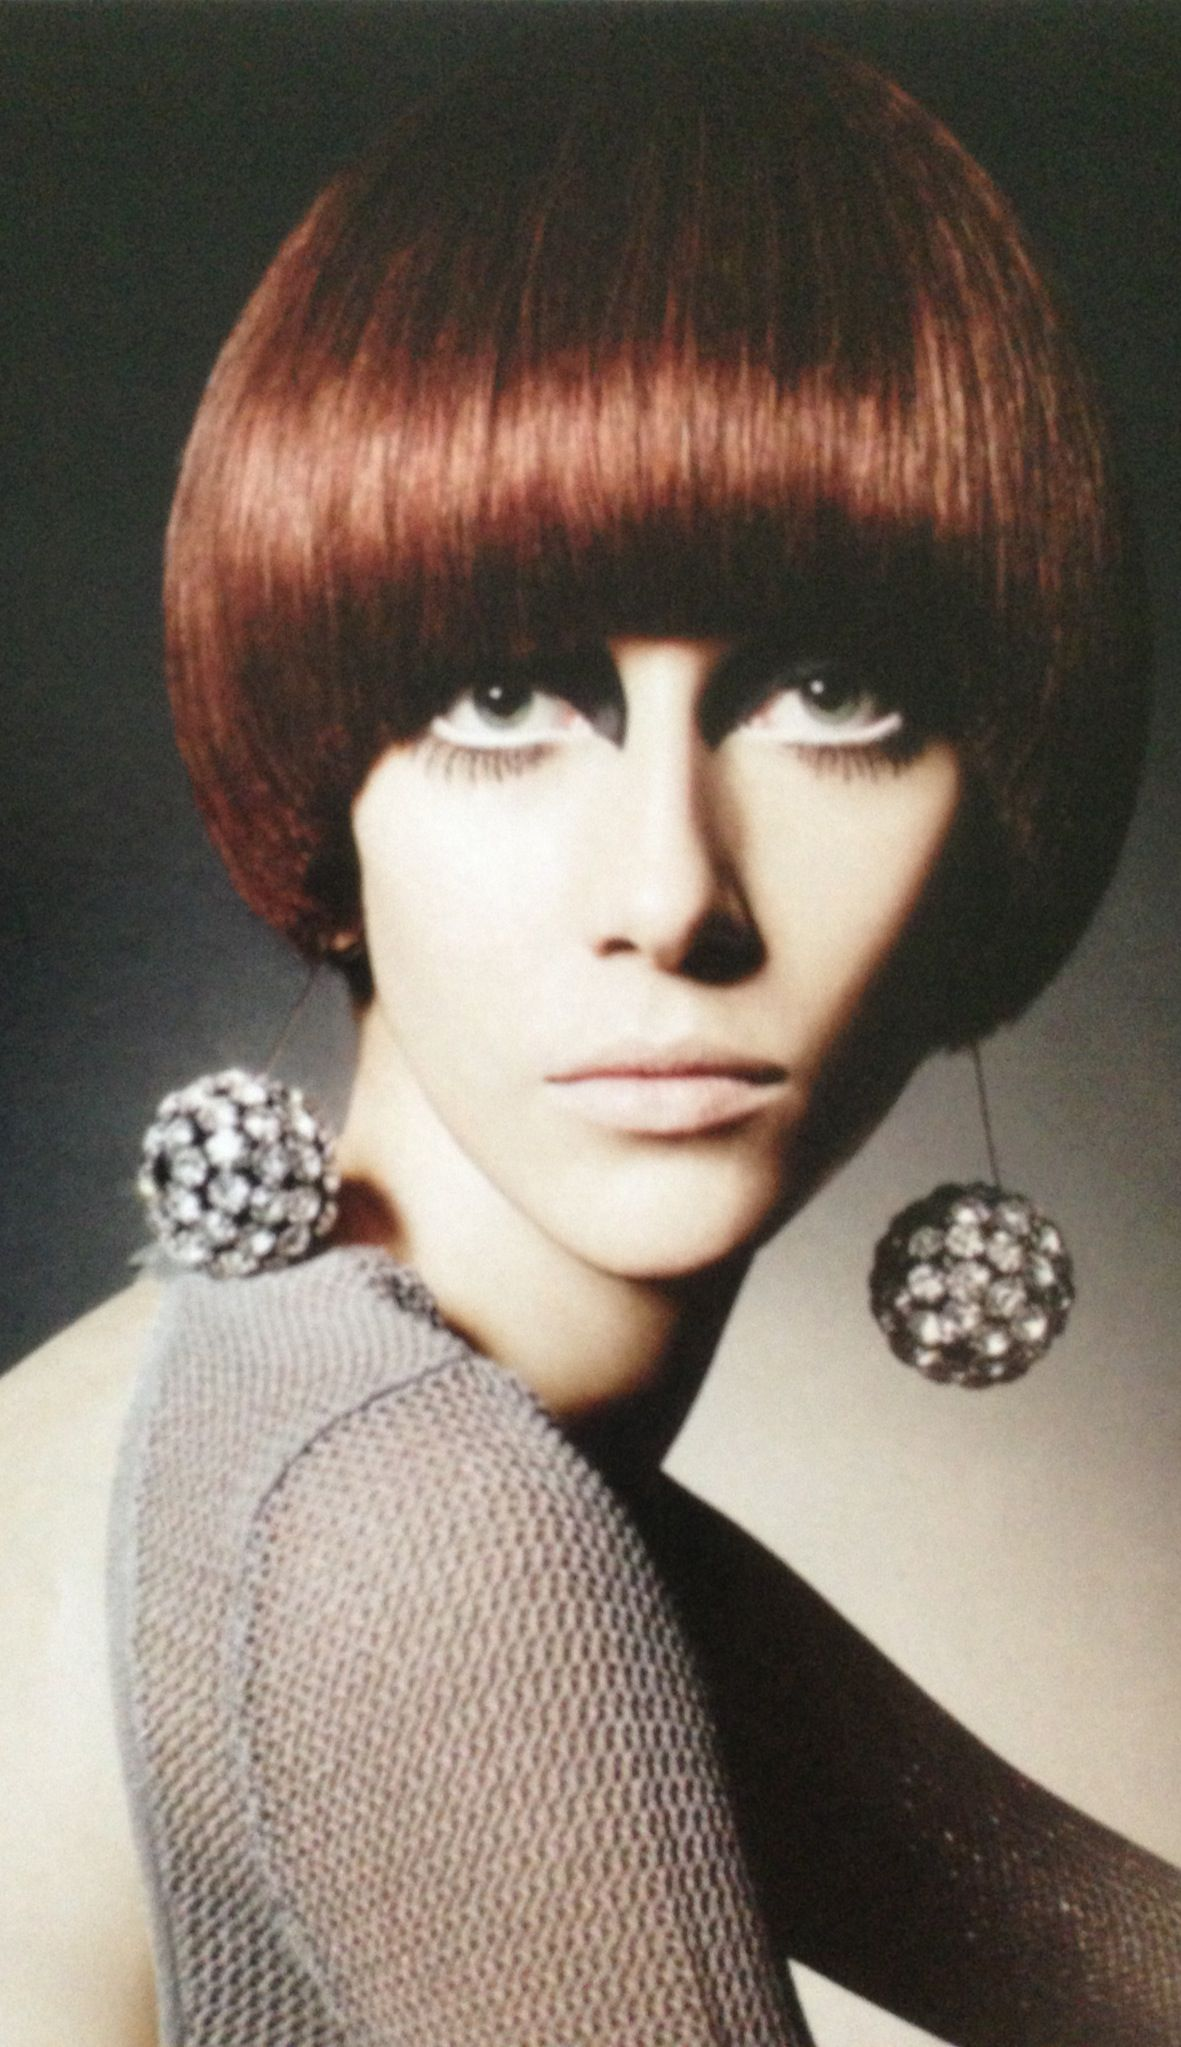 1960 s Mod Hair & Makeup round bowl cut